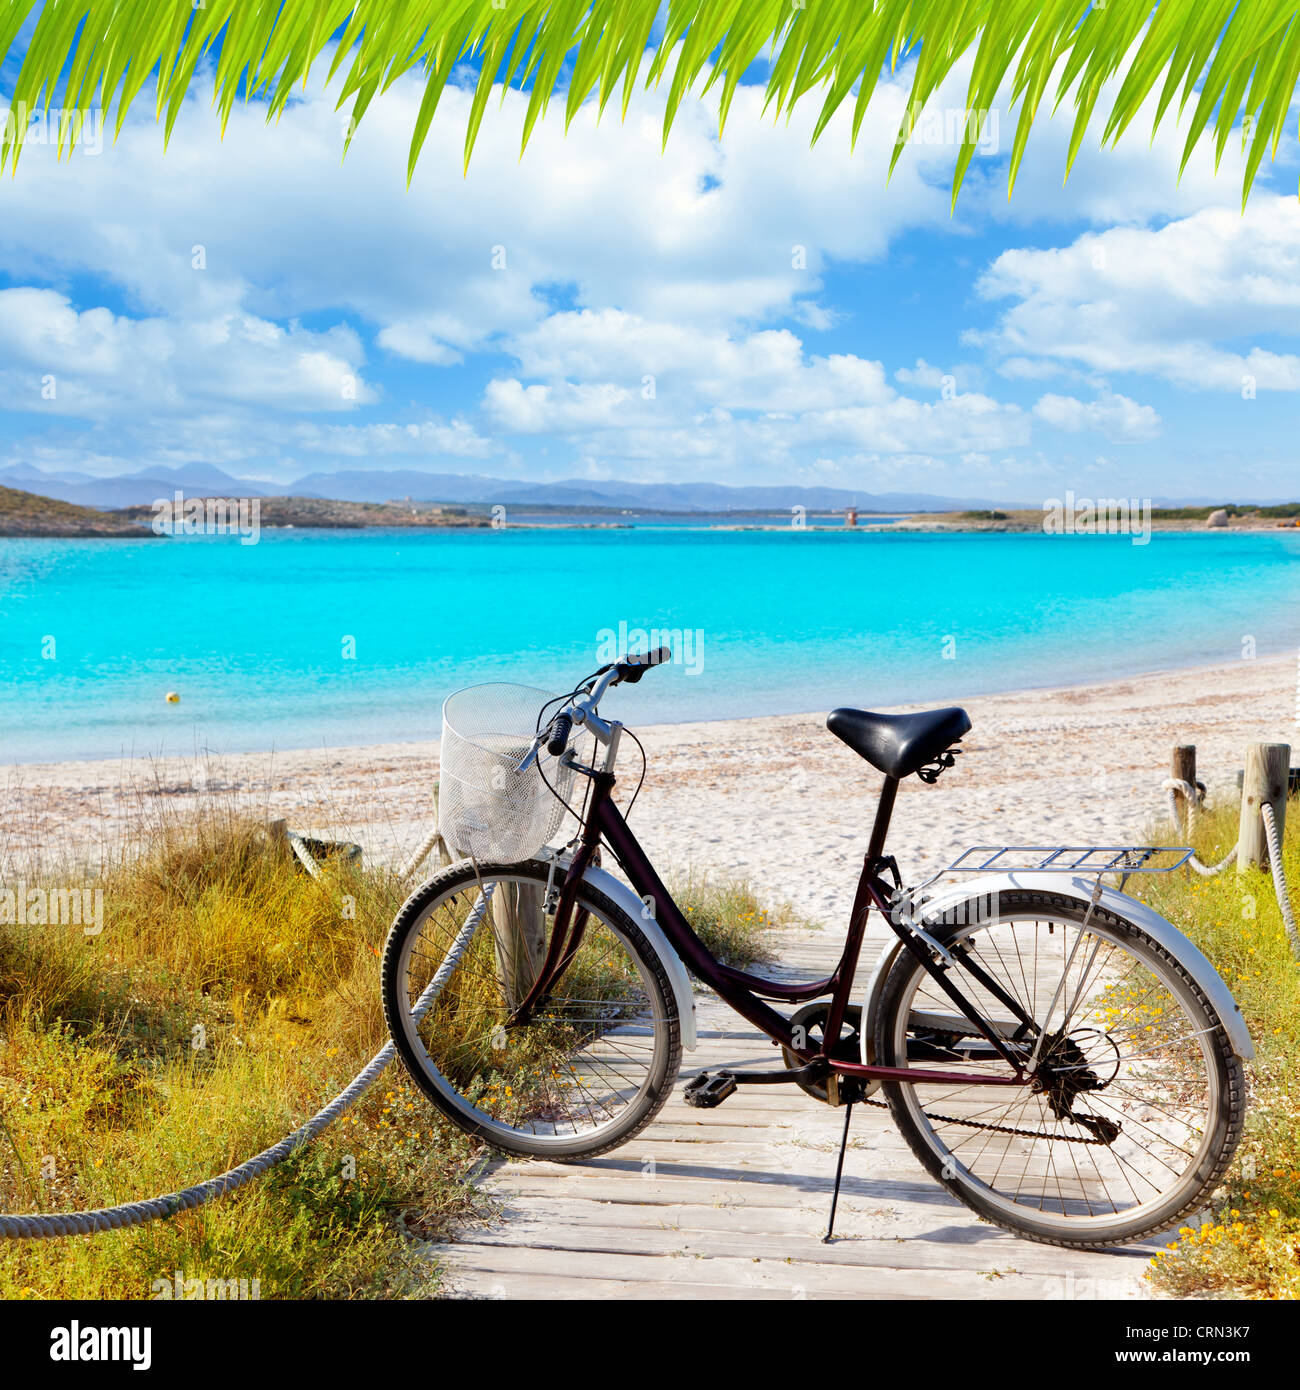 Bicycle in formentera beach on Balearic islands at Illetes Illetas - Stock Image